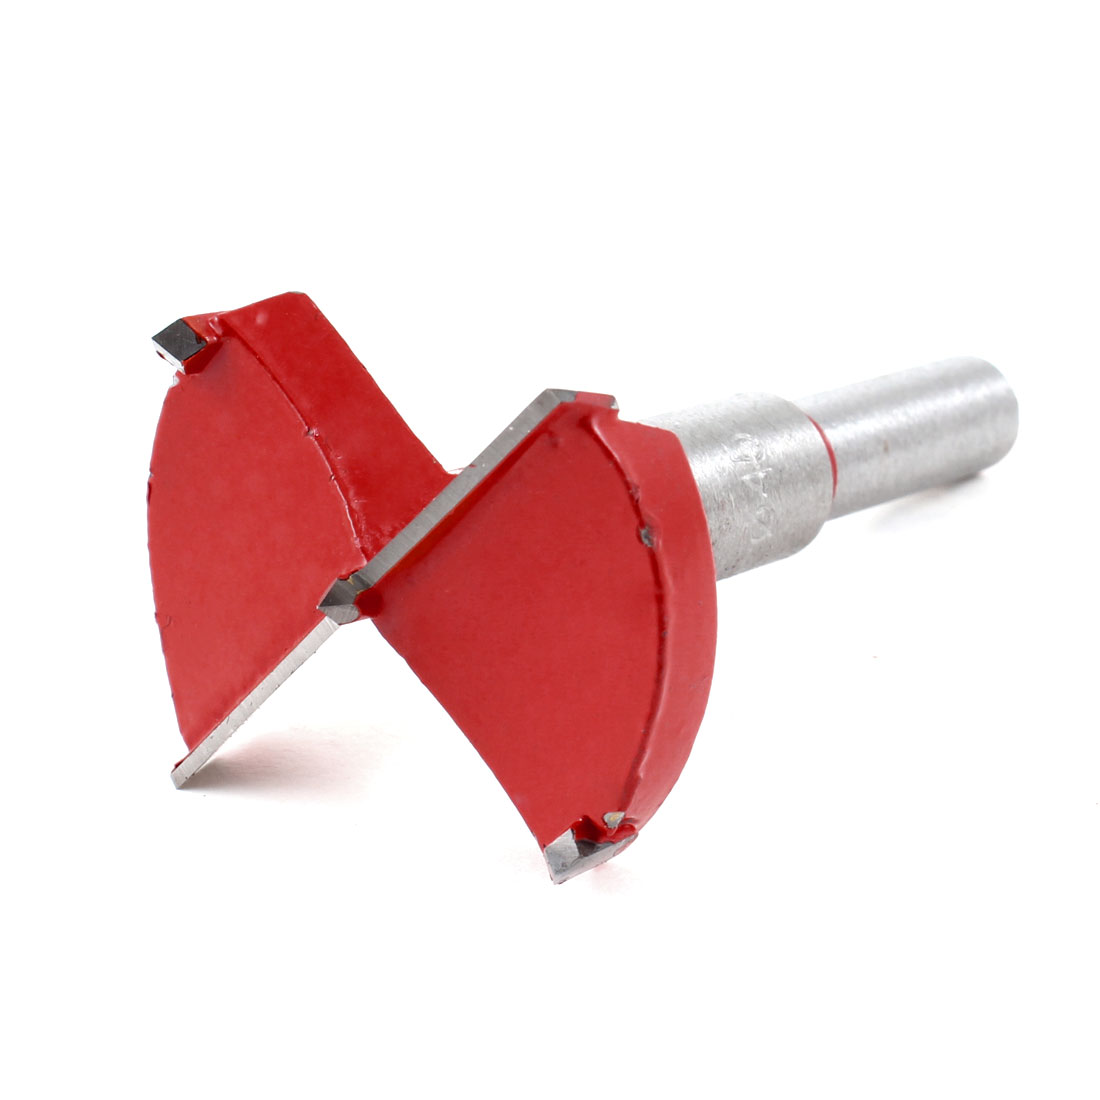 Carpenters Carbide Tipped 45mm Diameter Hinge Boring Bit Red Silver Tone